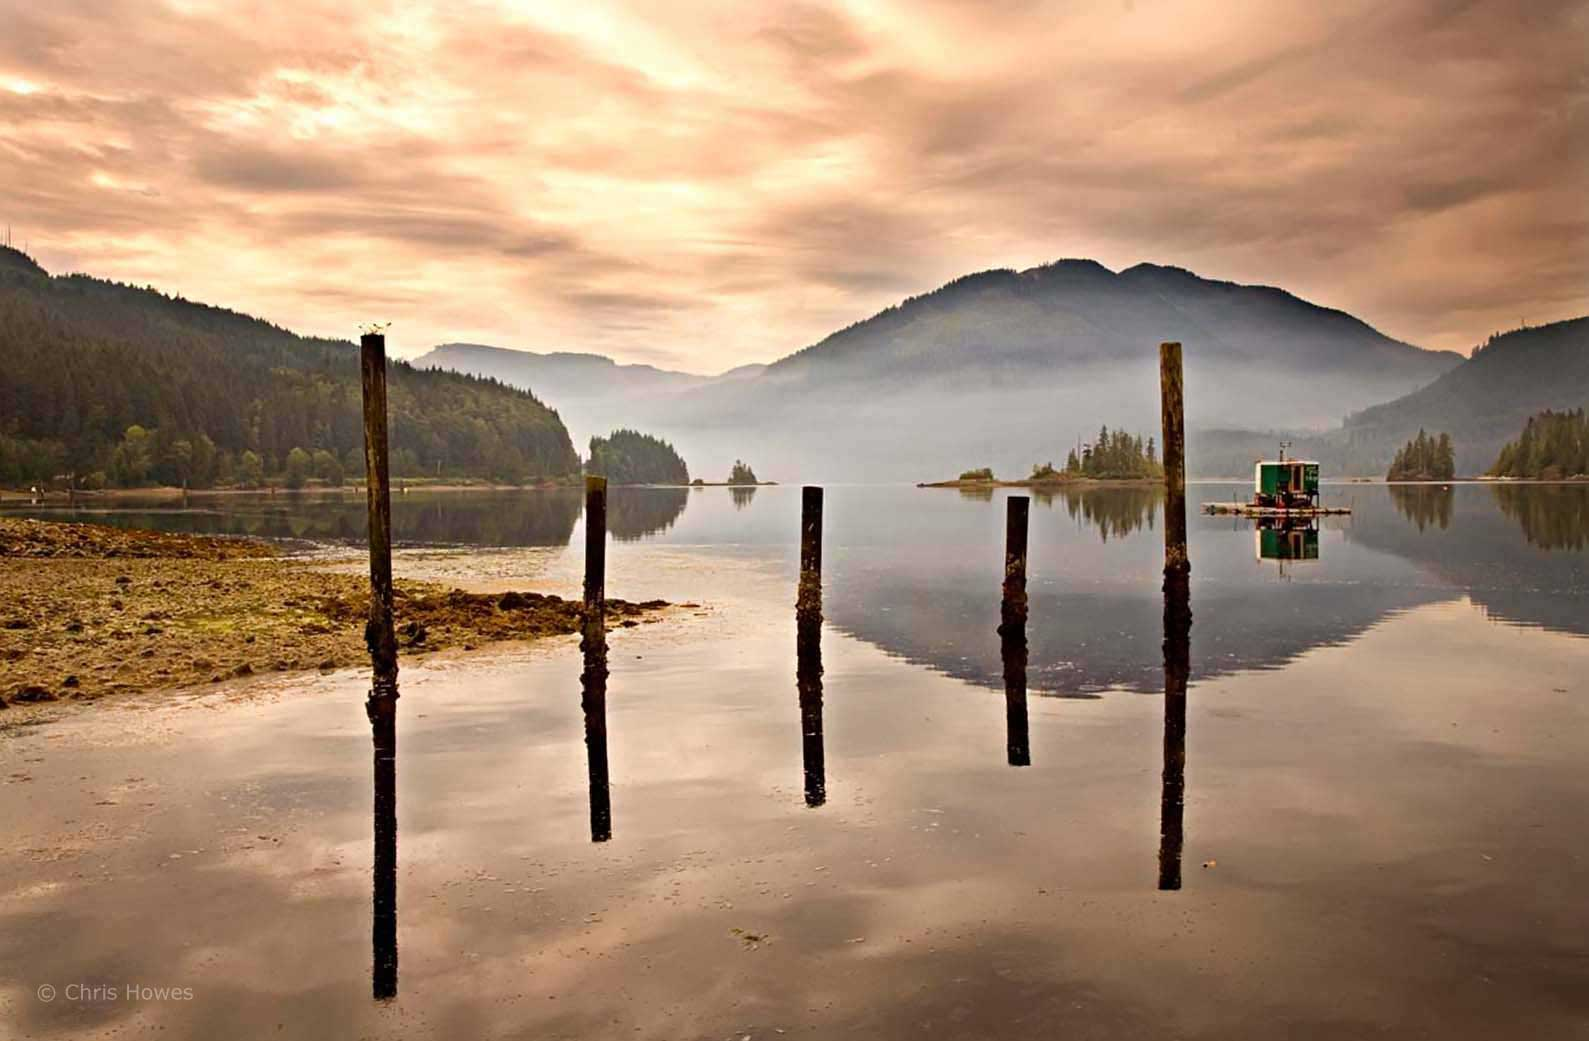 Port Alice, west coast of Vancouver island